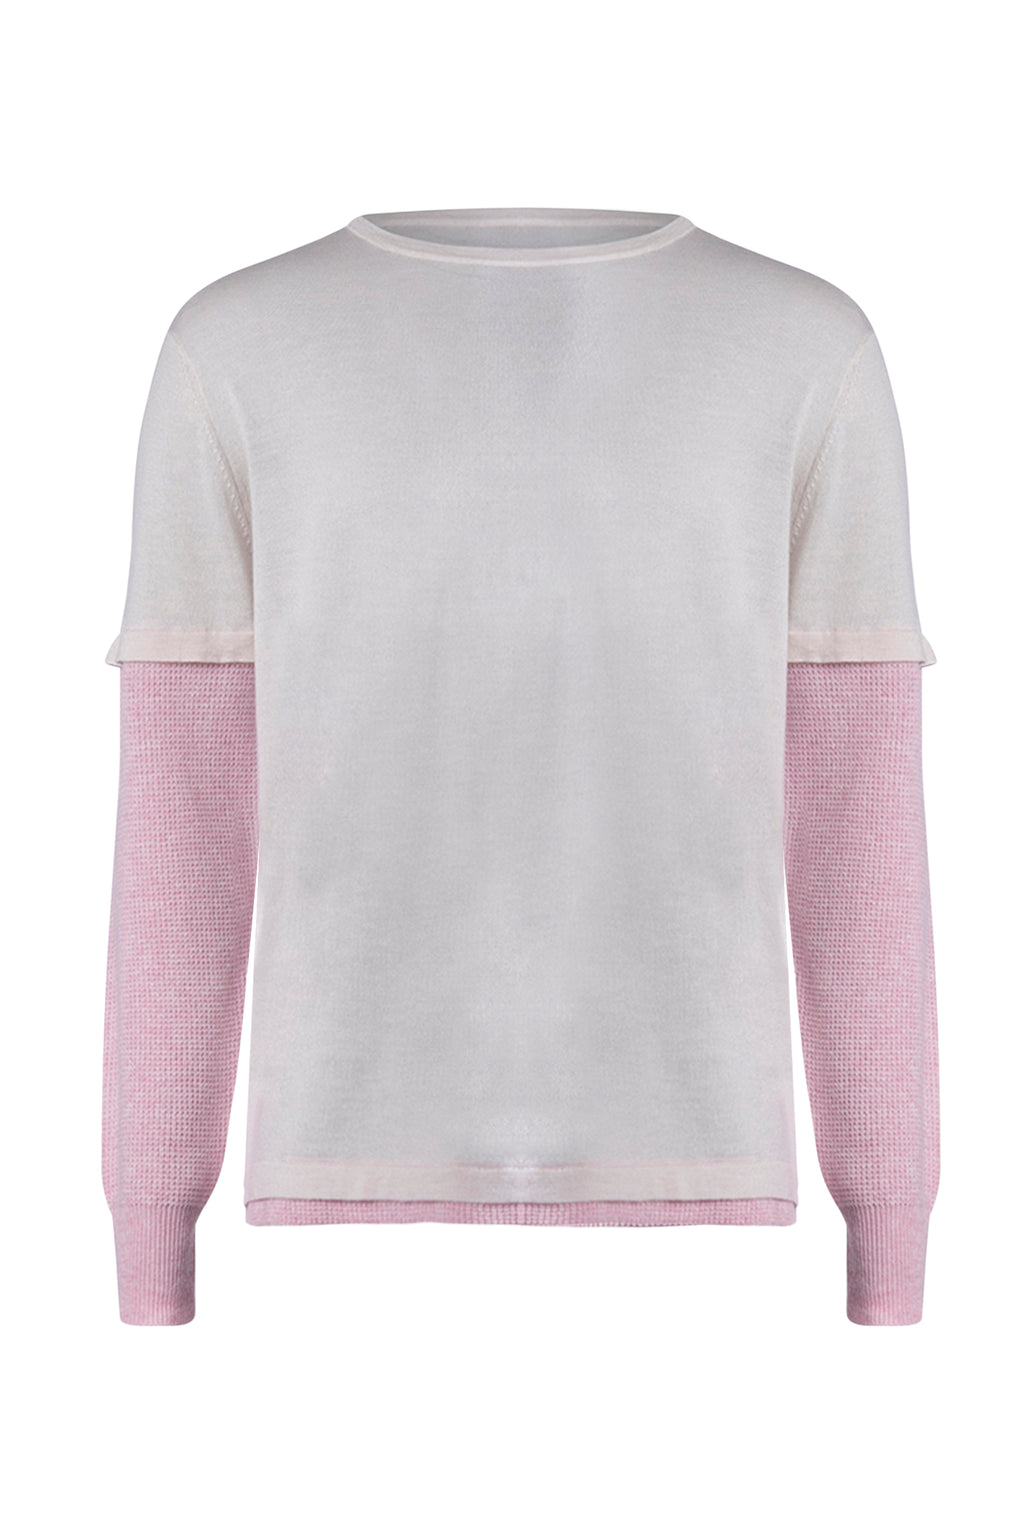 ISM Cashmere Waffle Long Sleeve Light Pink/Dark Pink